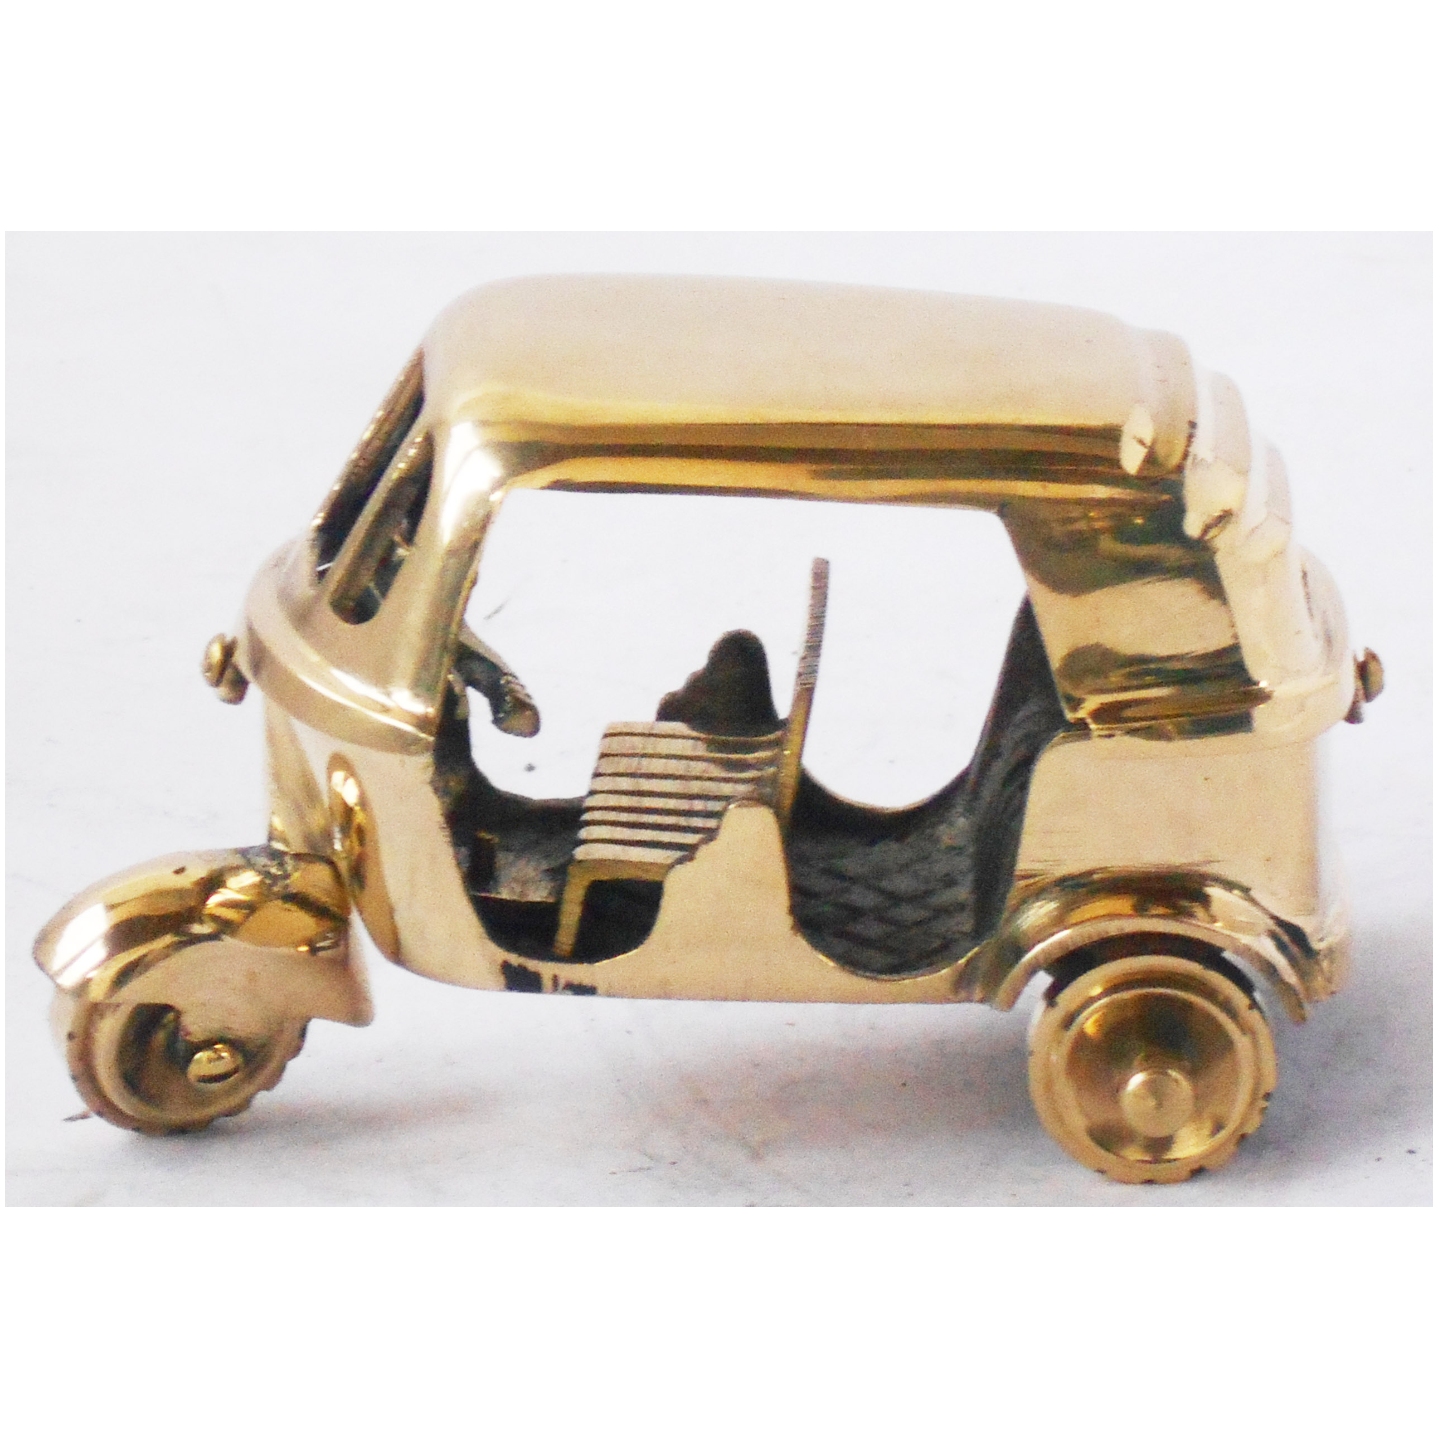 Brass Auto Toy Miniature For Children Playing- 533 inch Z349 C